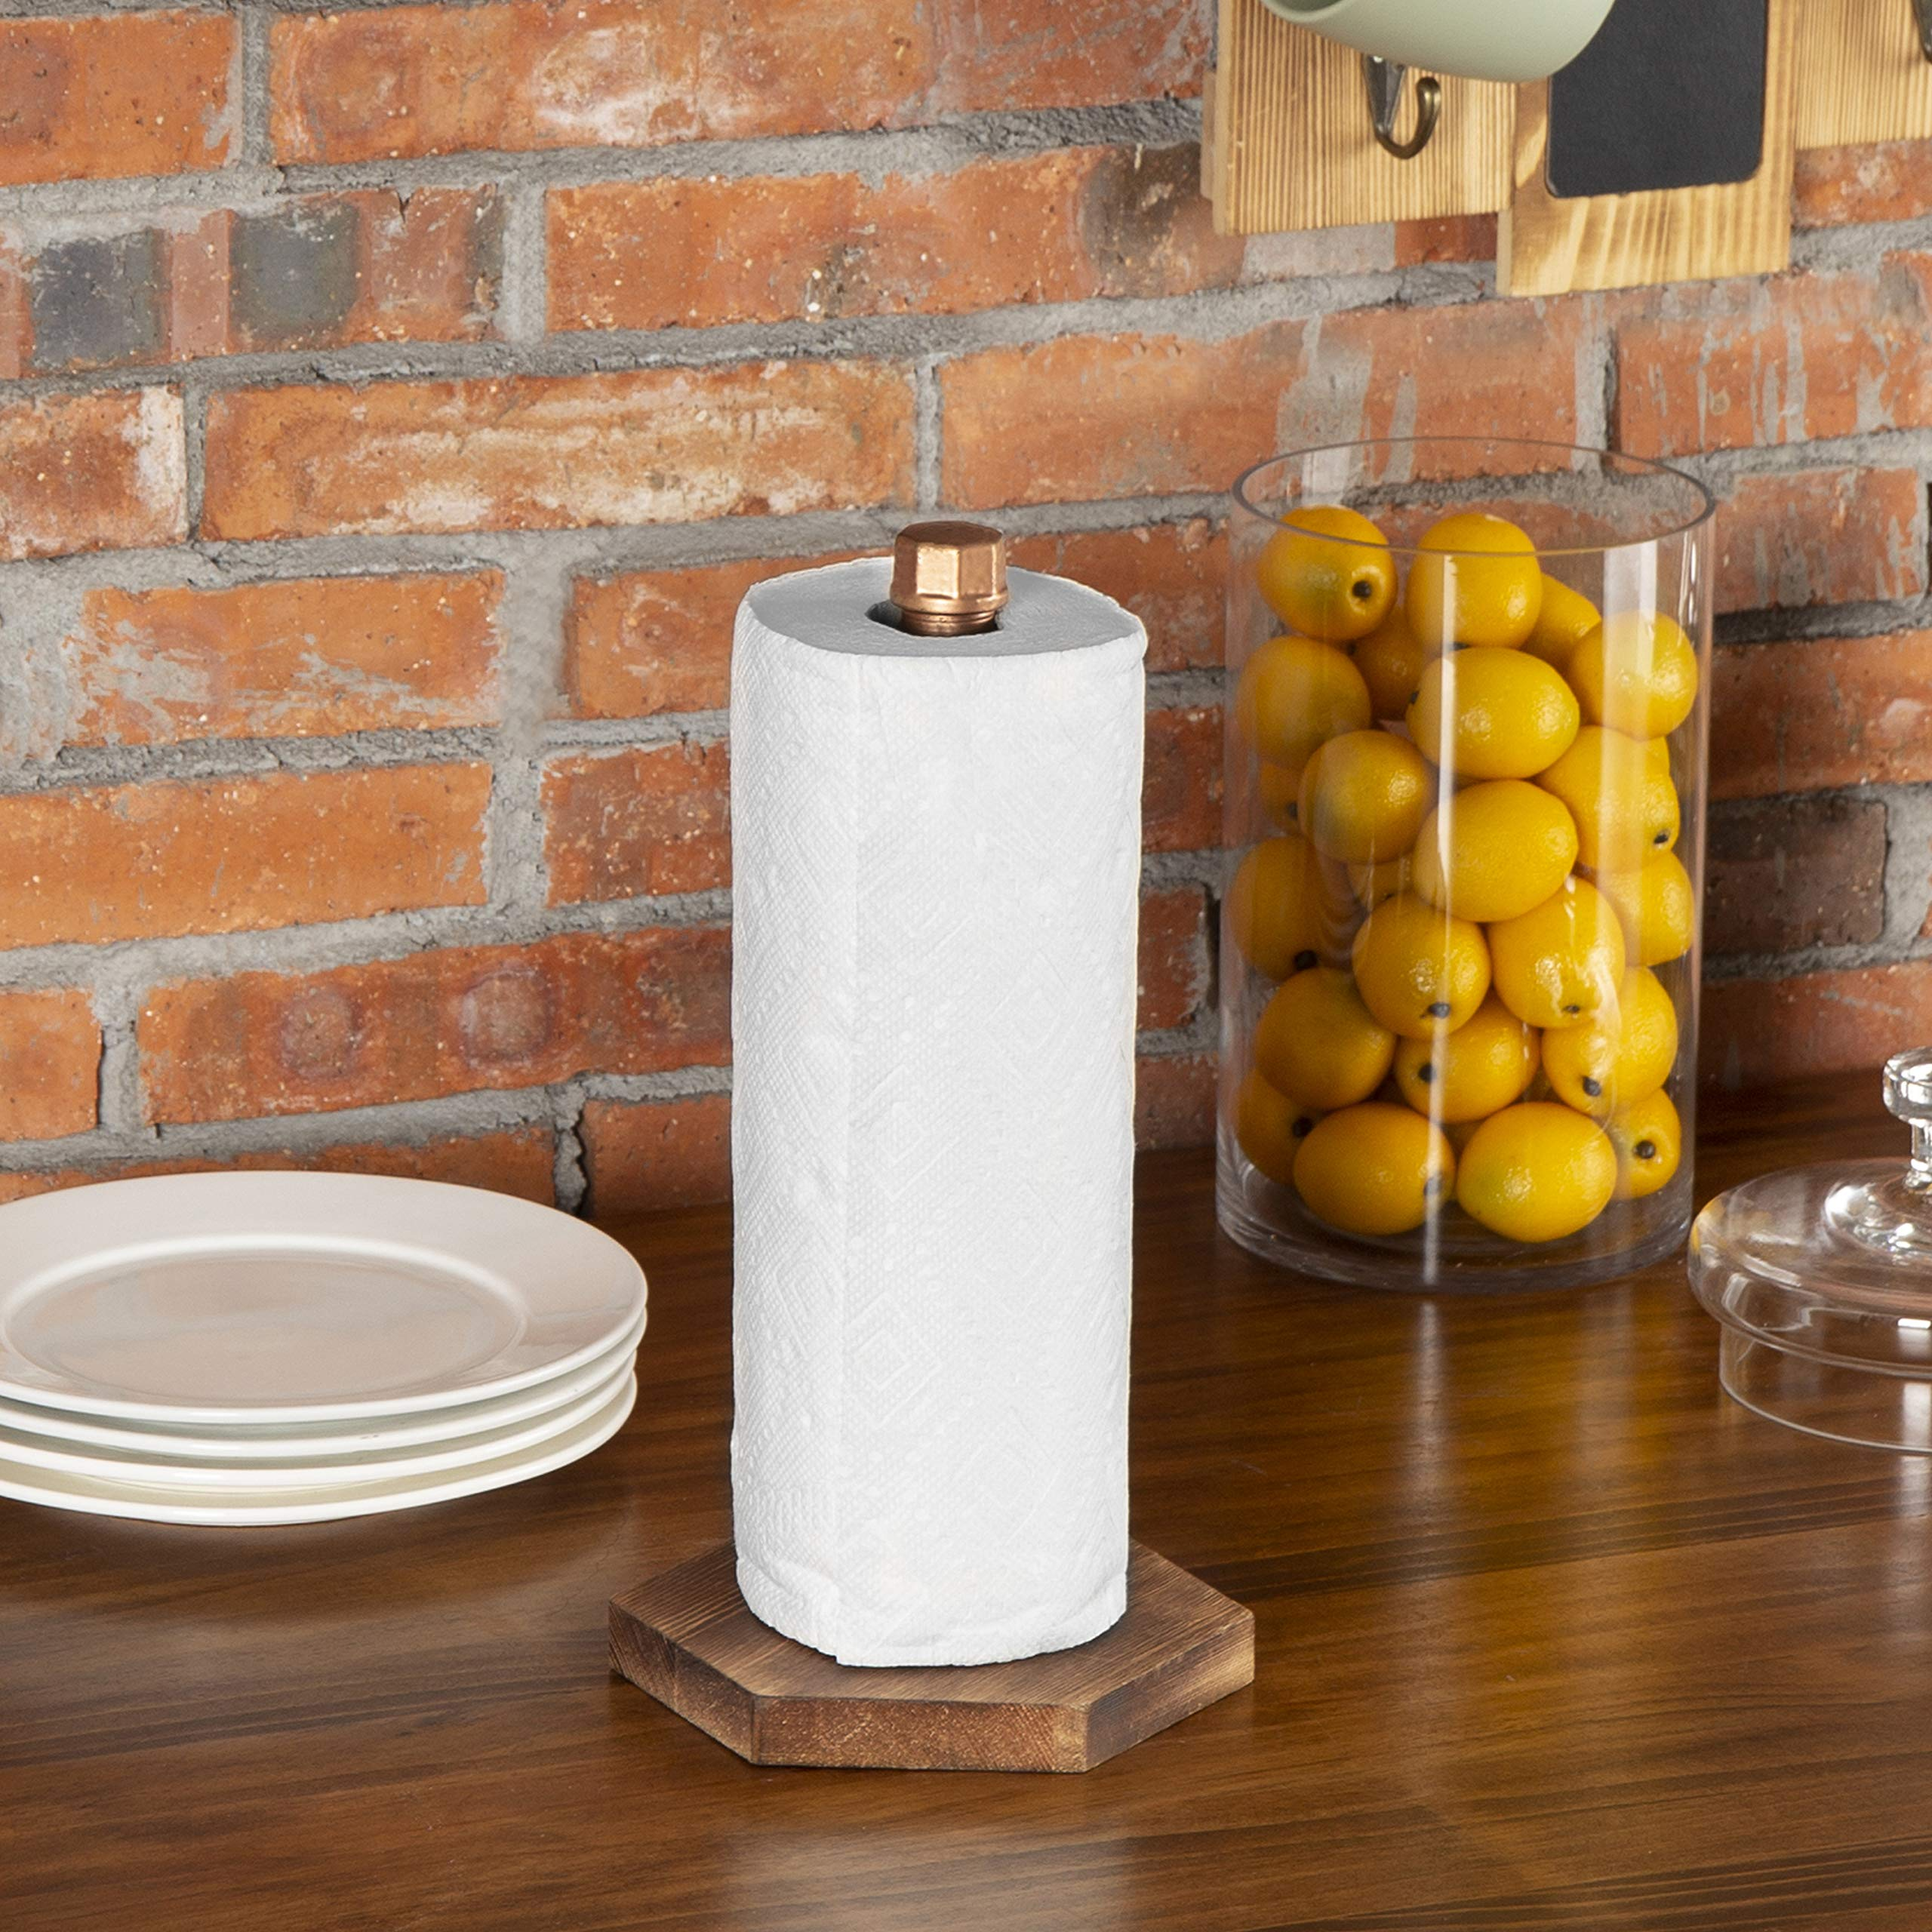 MyGift Industrial Copper-Tone Pipe & Burnt Wood Countertop Paper Towel Holder by MyGift (Image #2)